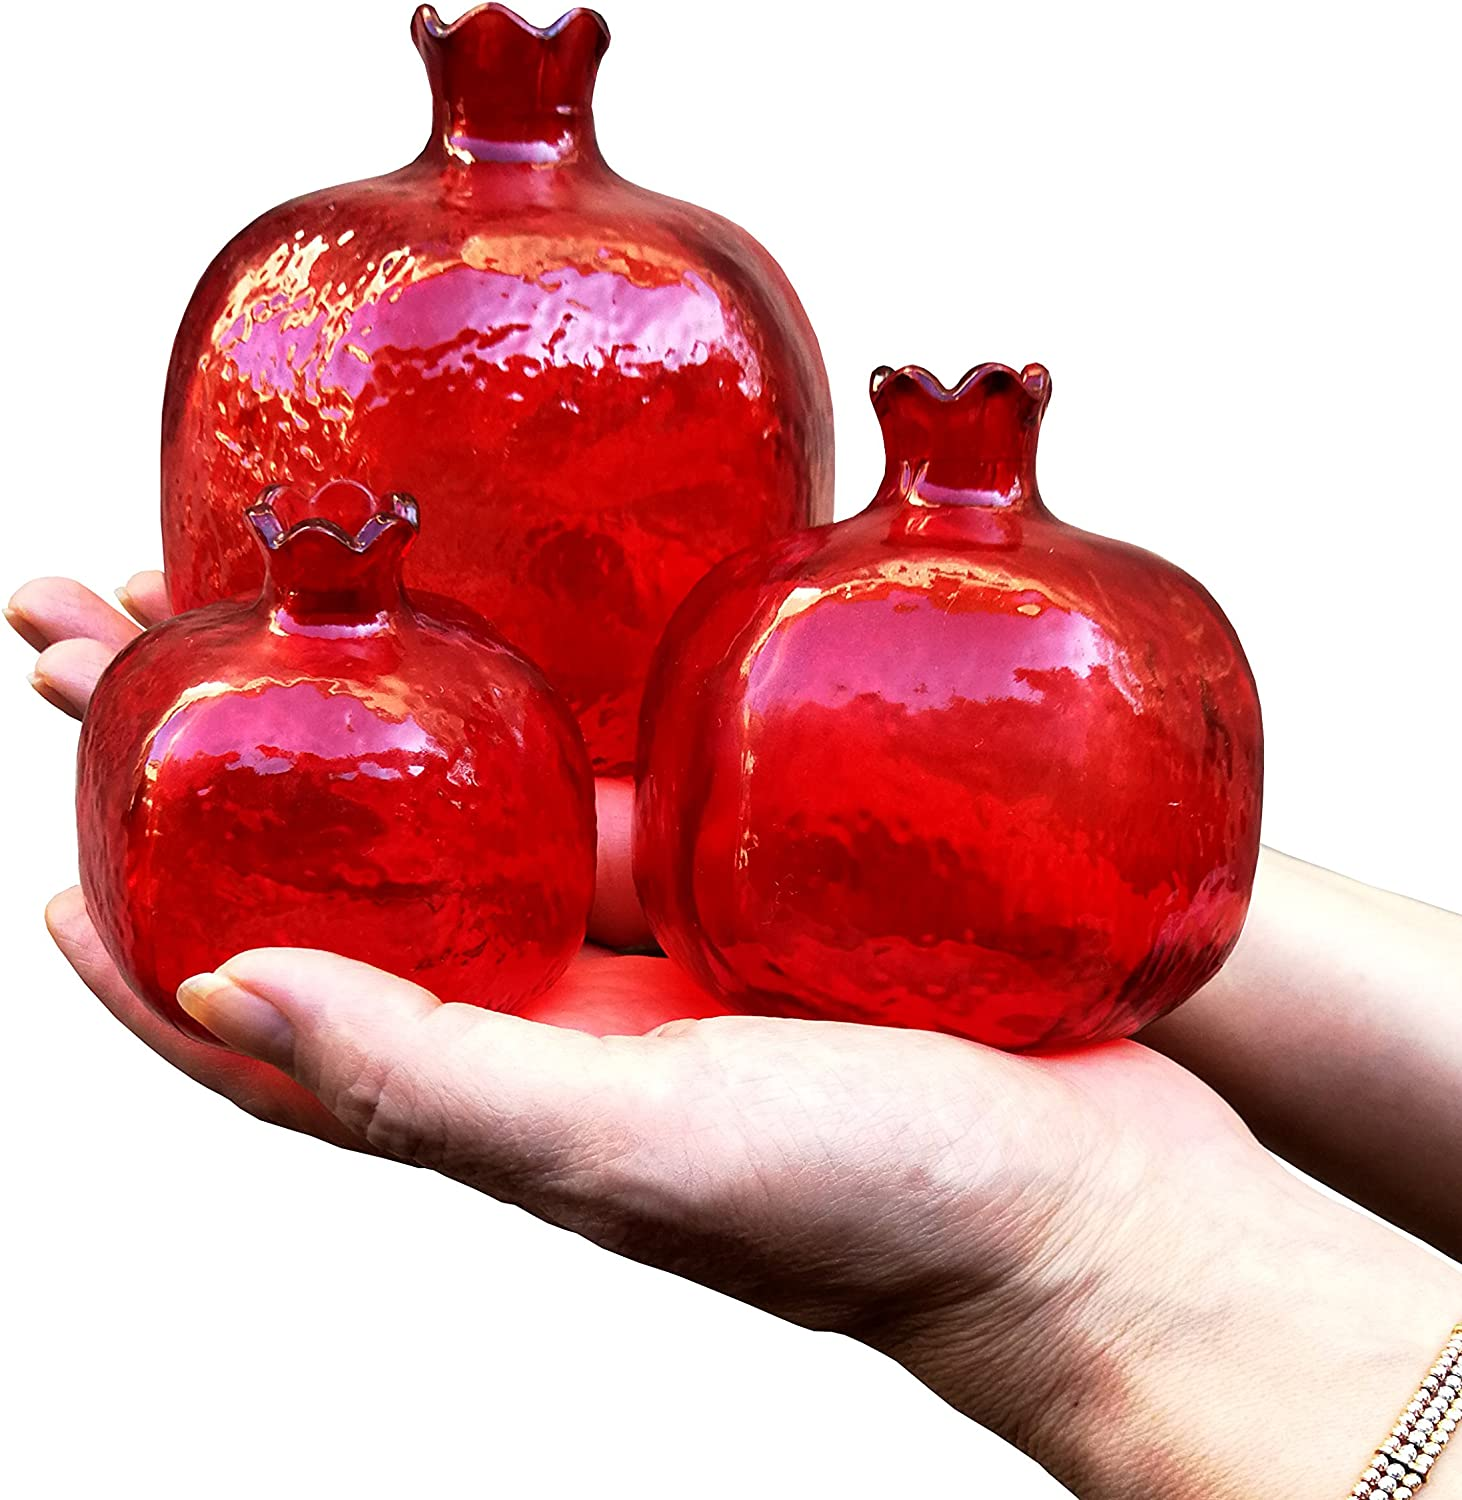 Bestdepo Pomegranate Home Decor,Ornament,Red Glass Vase,Set of 3, New Year Gift